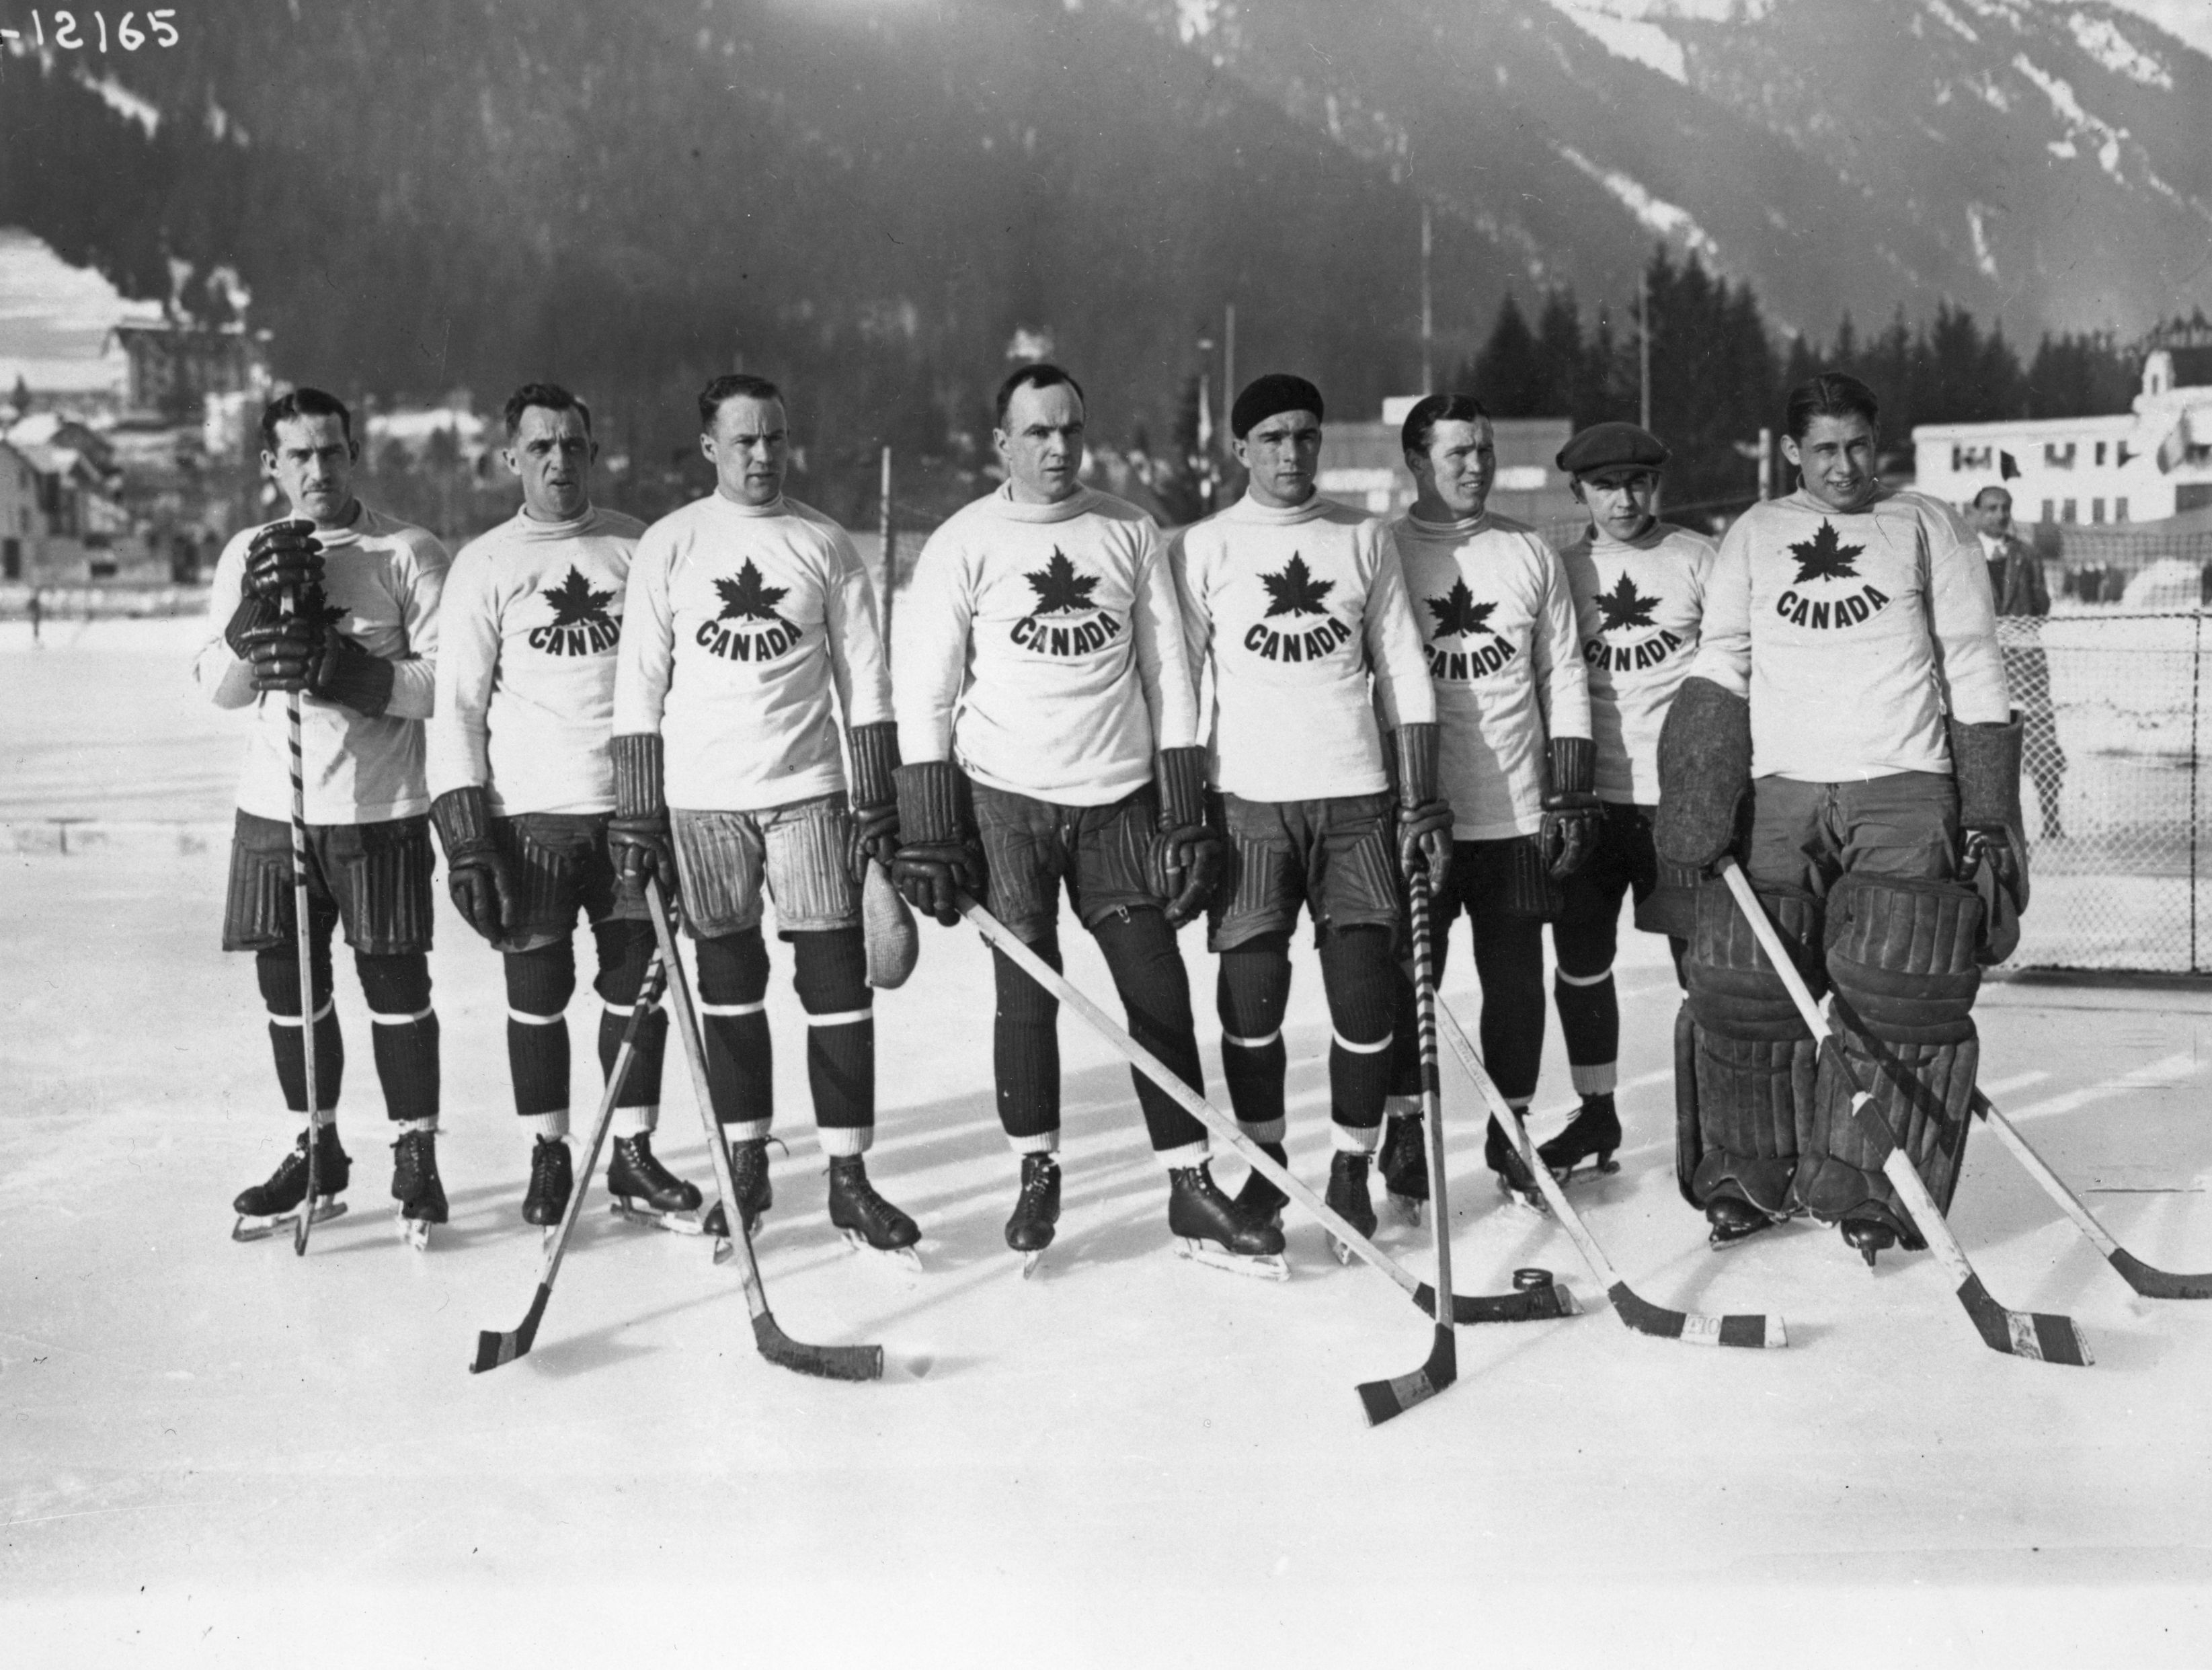 The Canadian ice hockey team, the Toronto Granites, who beat the United States in the final 6-1 to take the gold medal at the first Winter Olympics. (Photo by Topical Press Agency/Getty Images)